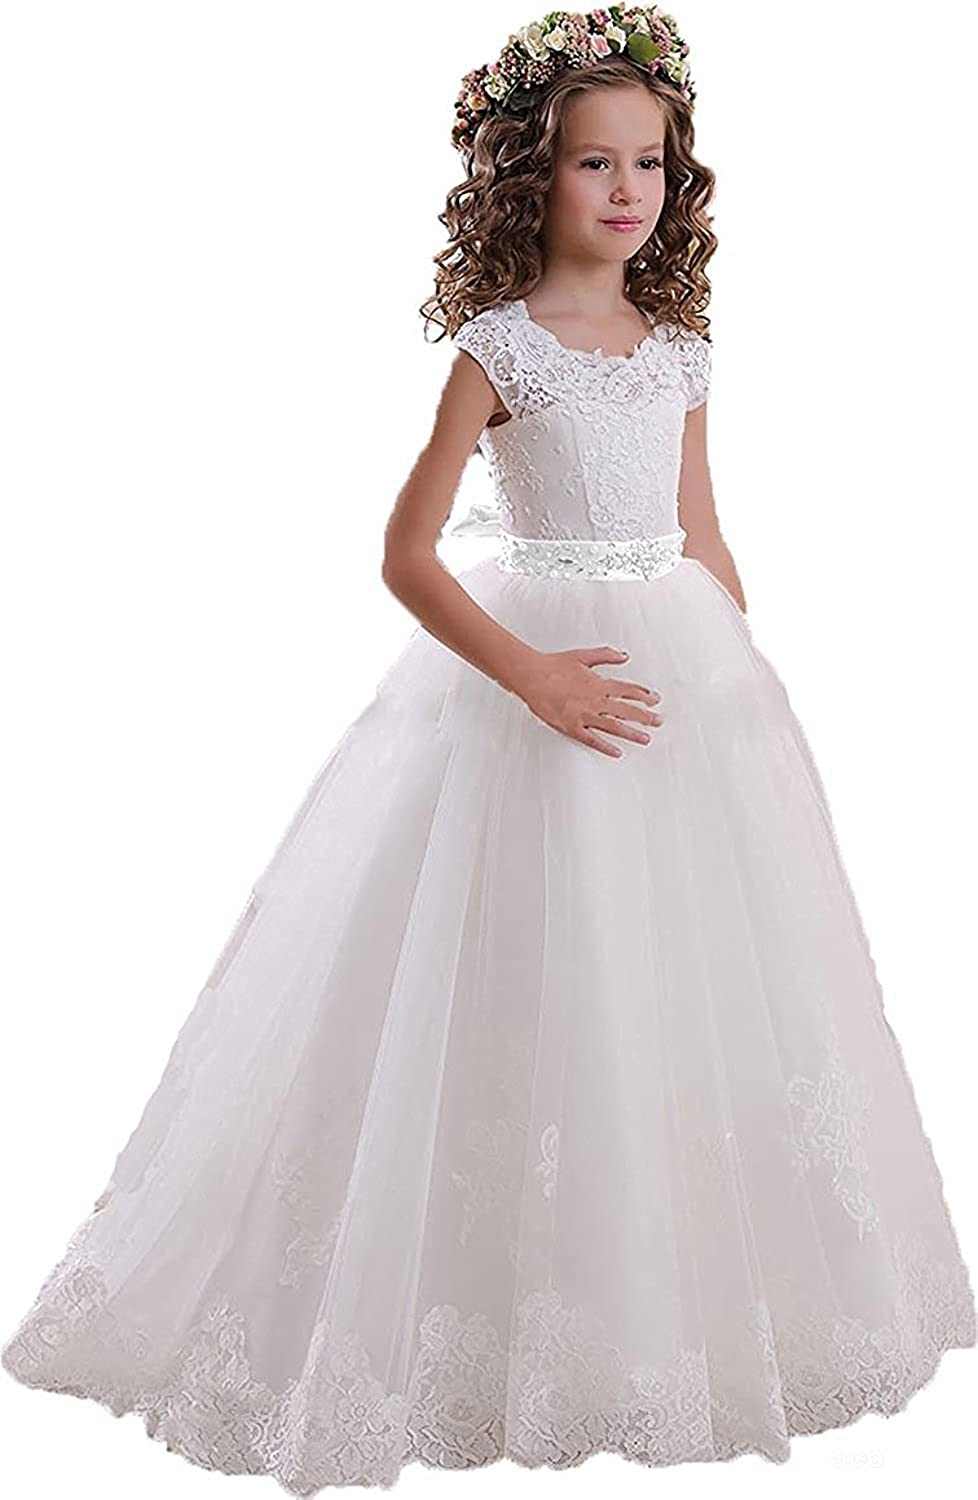 2c8a2abcd93 Lace Flower Girl Dresses Near Me - Gomes Weine AG